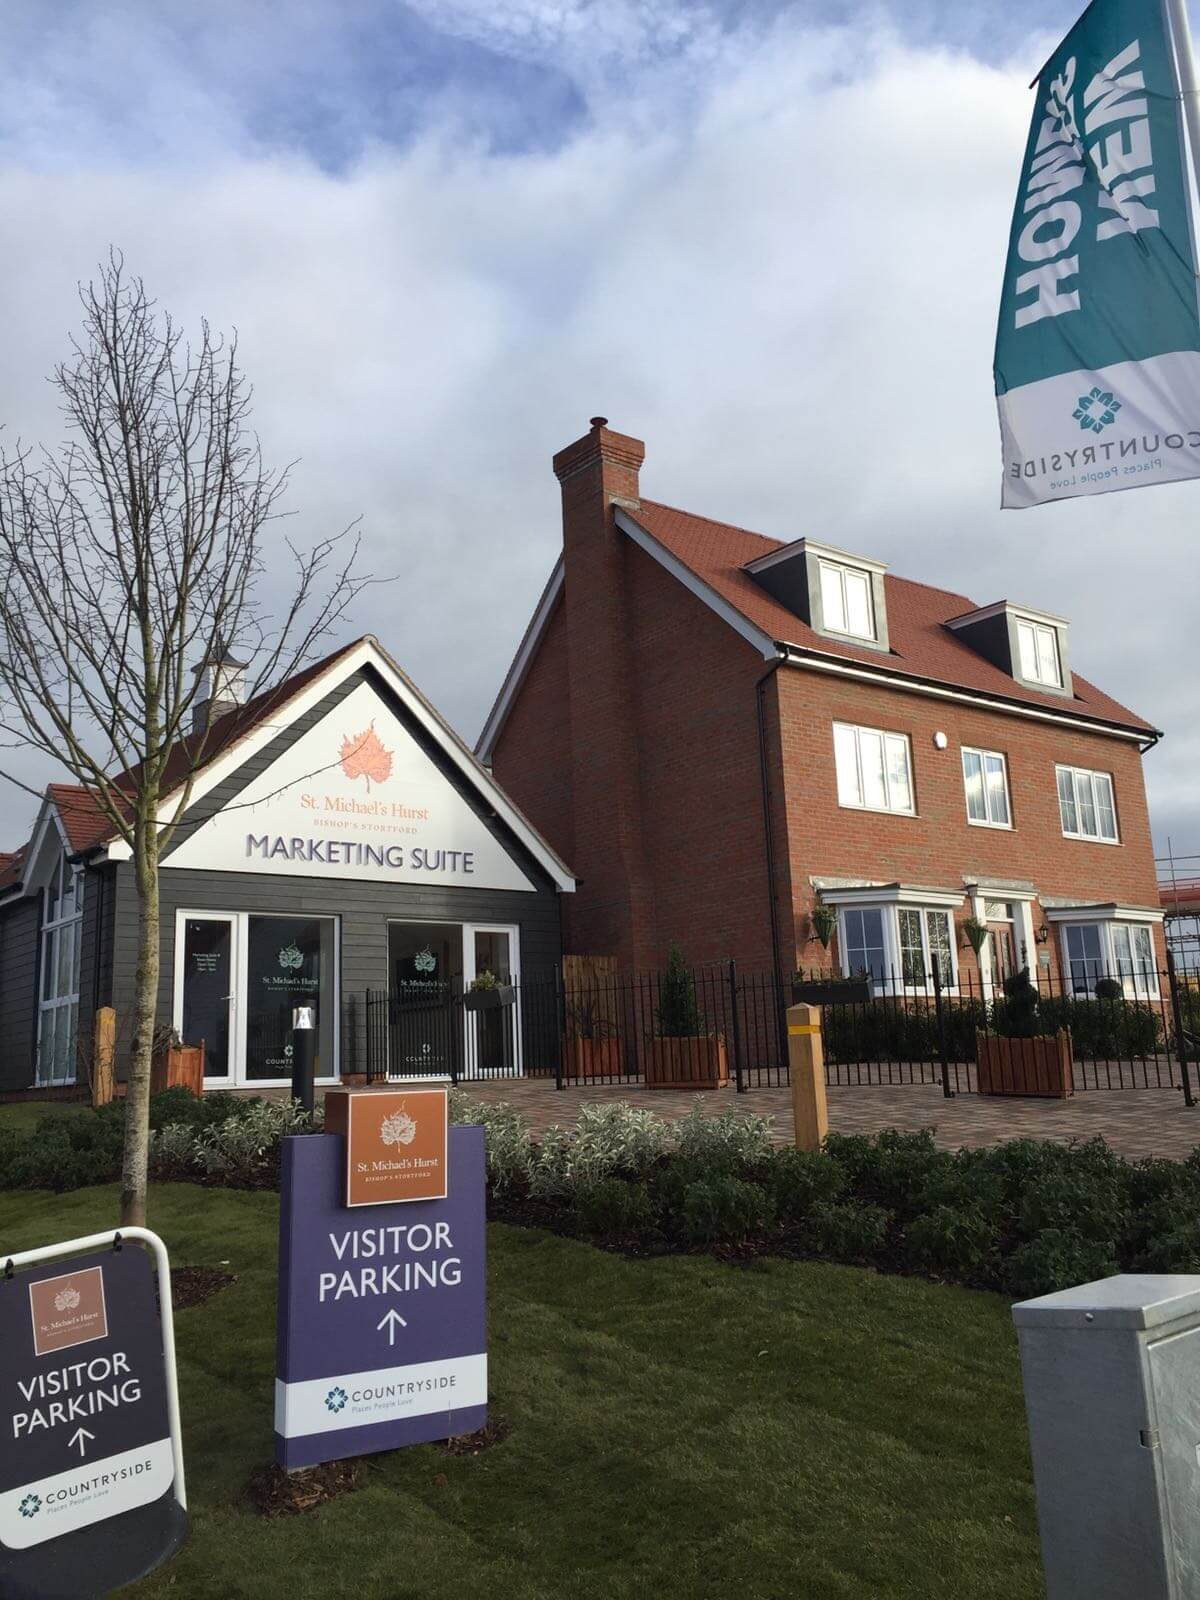 New Build development by Countryside Properties